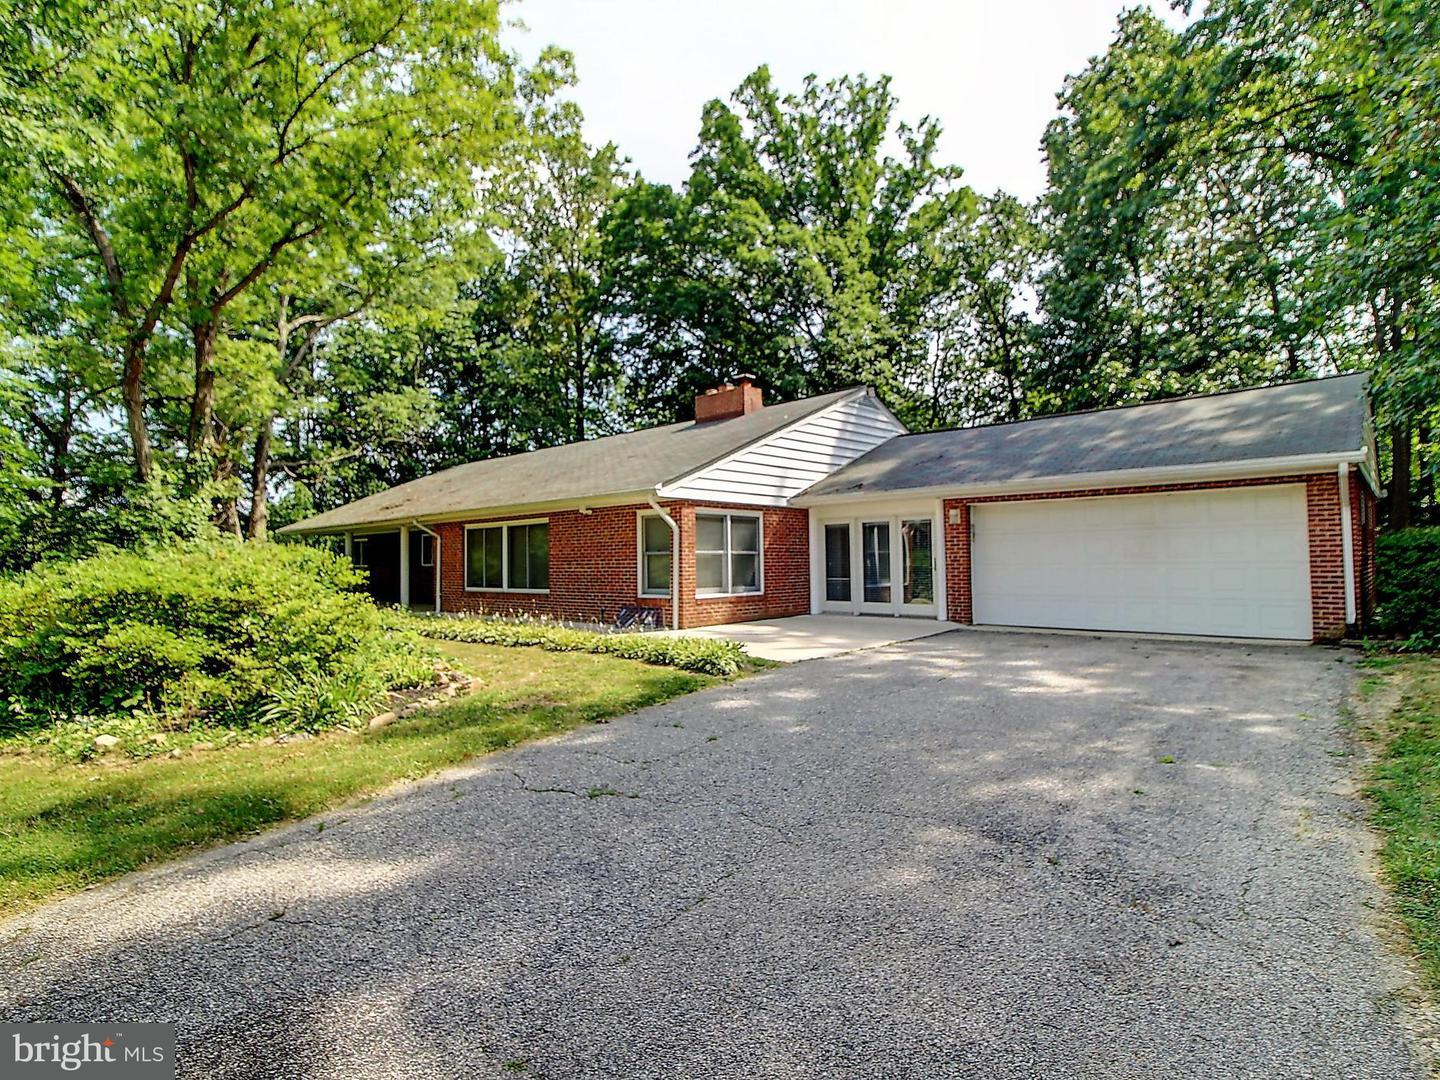 Other Residential for Rent at 5015 New Forge Rd Perry Hall, Maryland 21128 United States